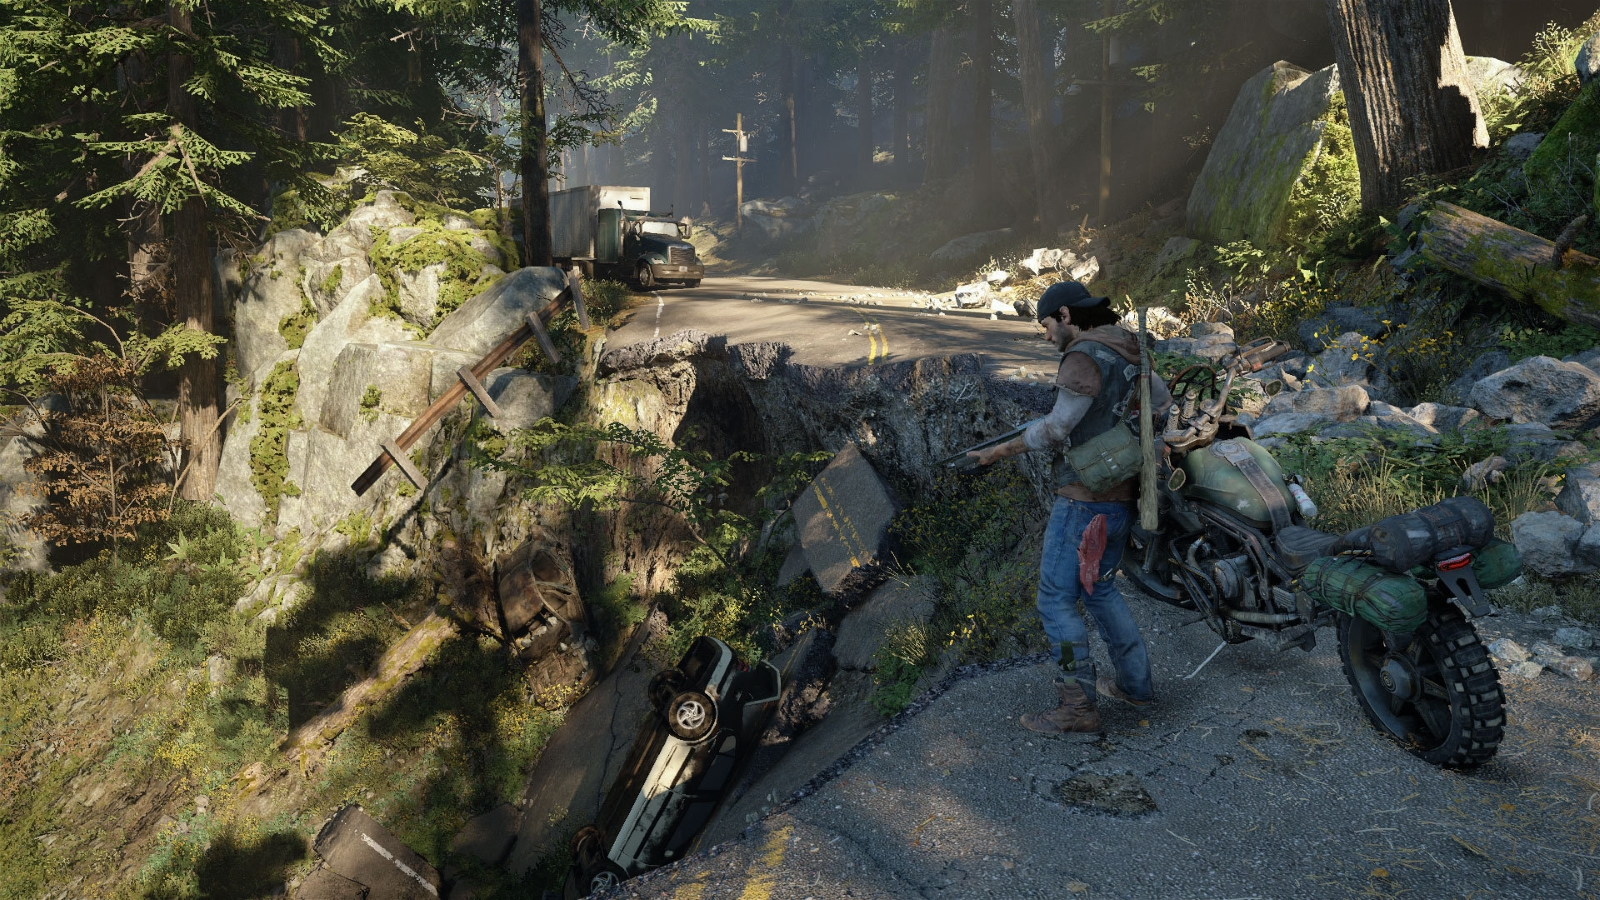 Days Gone Is The Second Best Selling Game In The UK After GTA V Despite Being A PS4 Exclusive Title